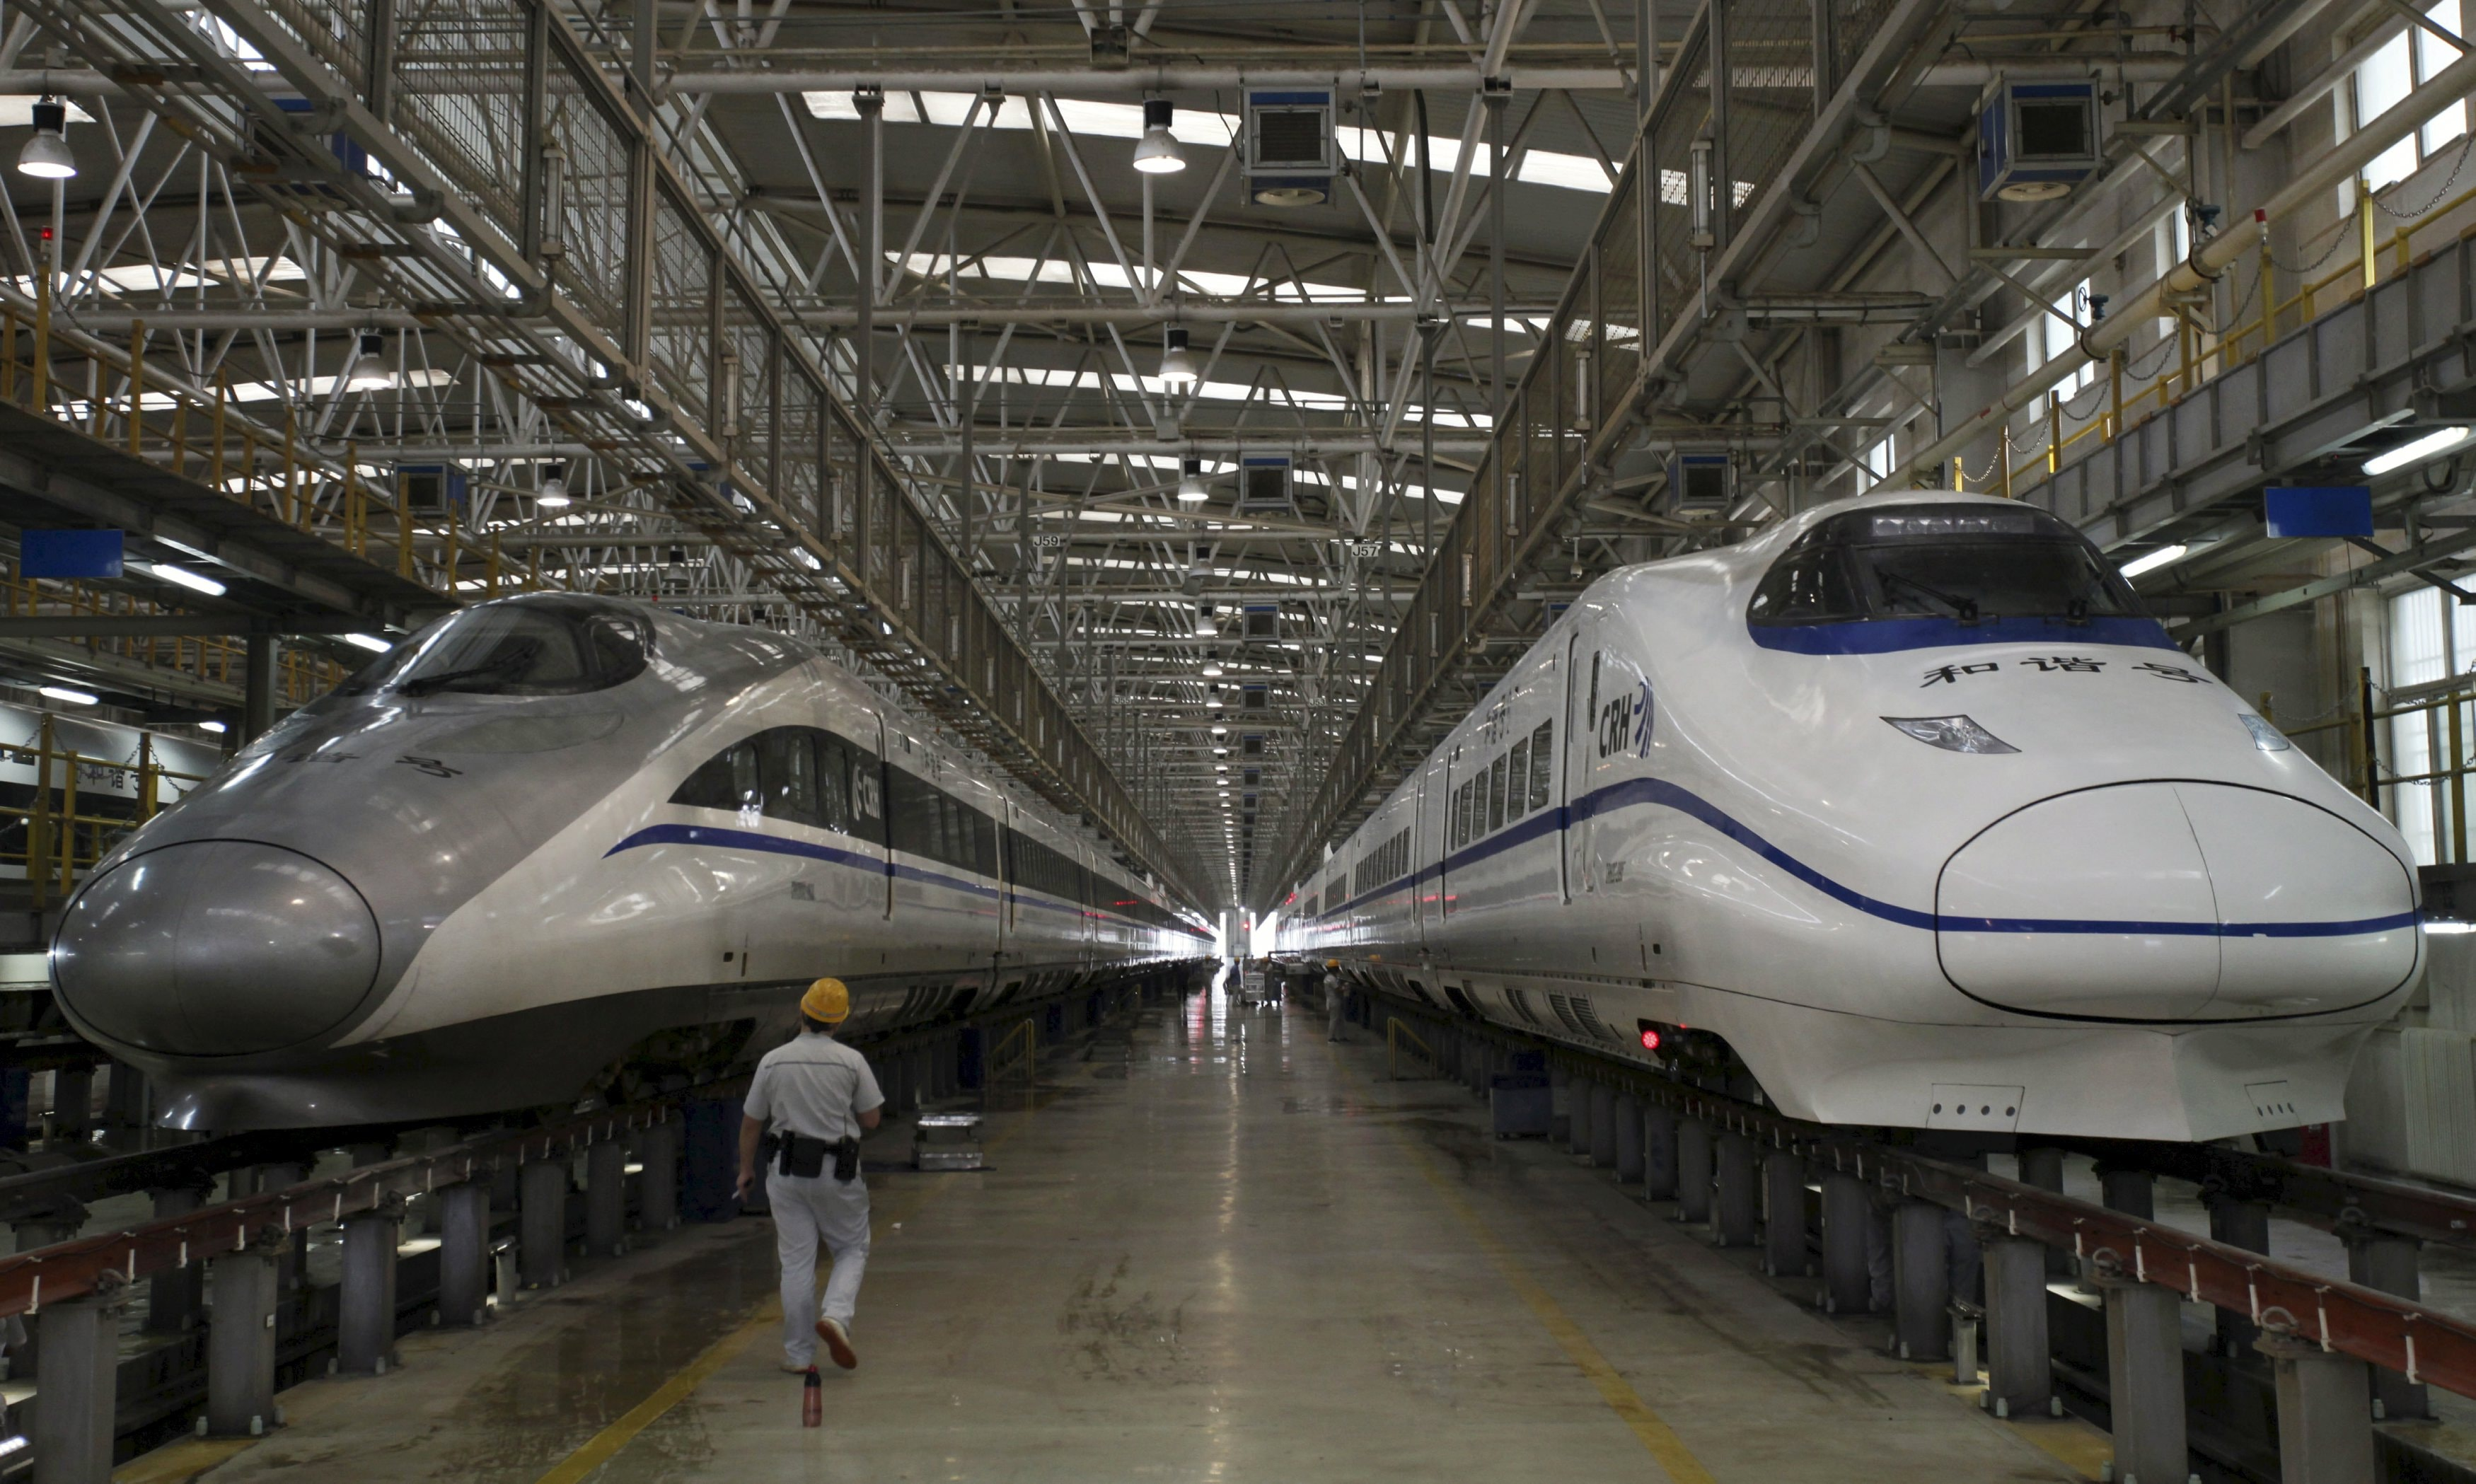 Modi's Bullet Train Project Hits a Snag, India Set to Miss Deadline to Acquire Land